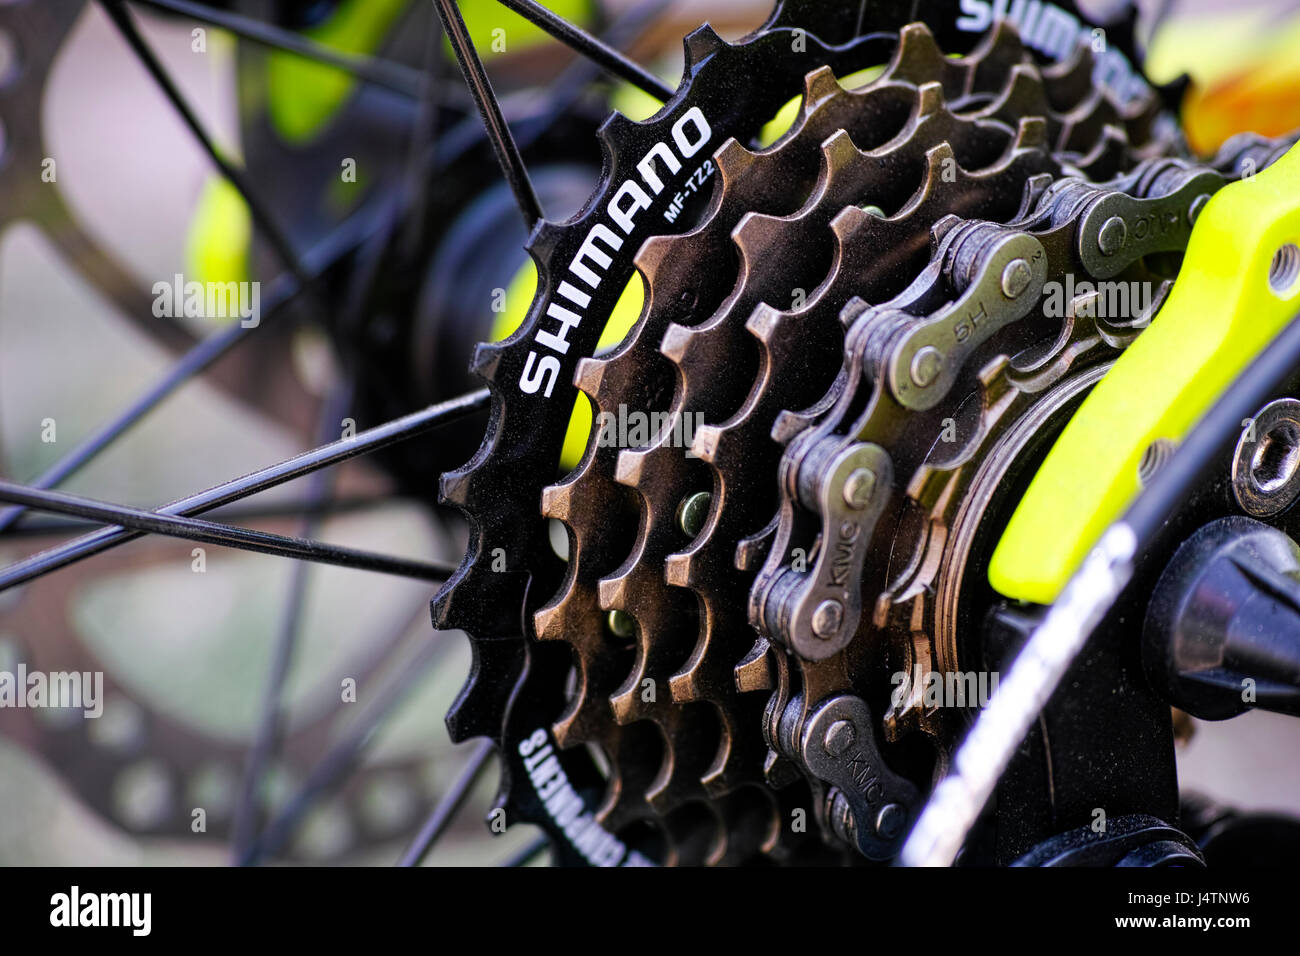 Tambov, Russian Federation - May 07, 2017 Shimano gear cassette on bicycle. - Stock Image